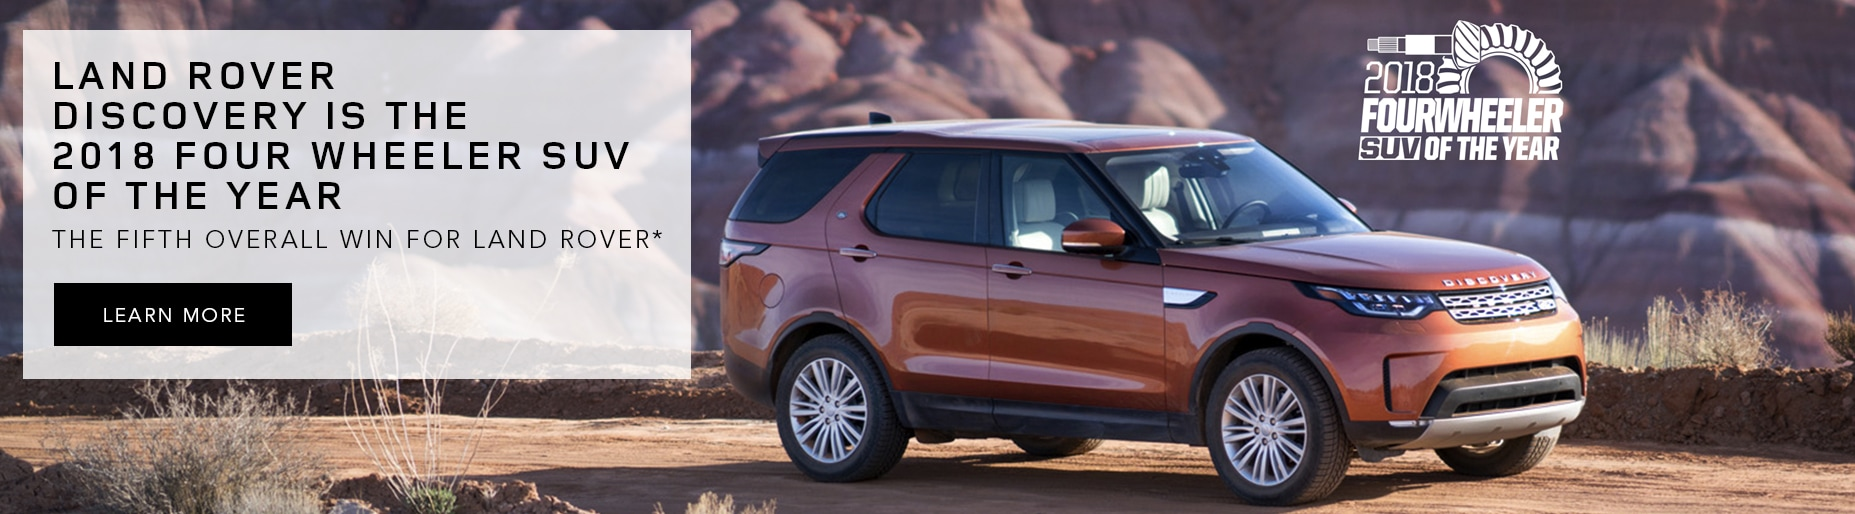 rover new specials dealership southampton land in landrover